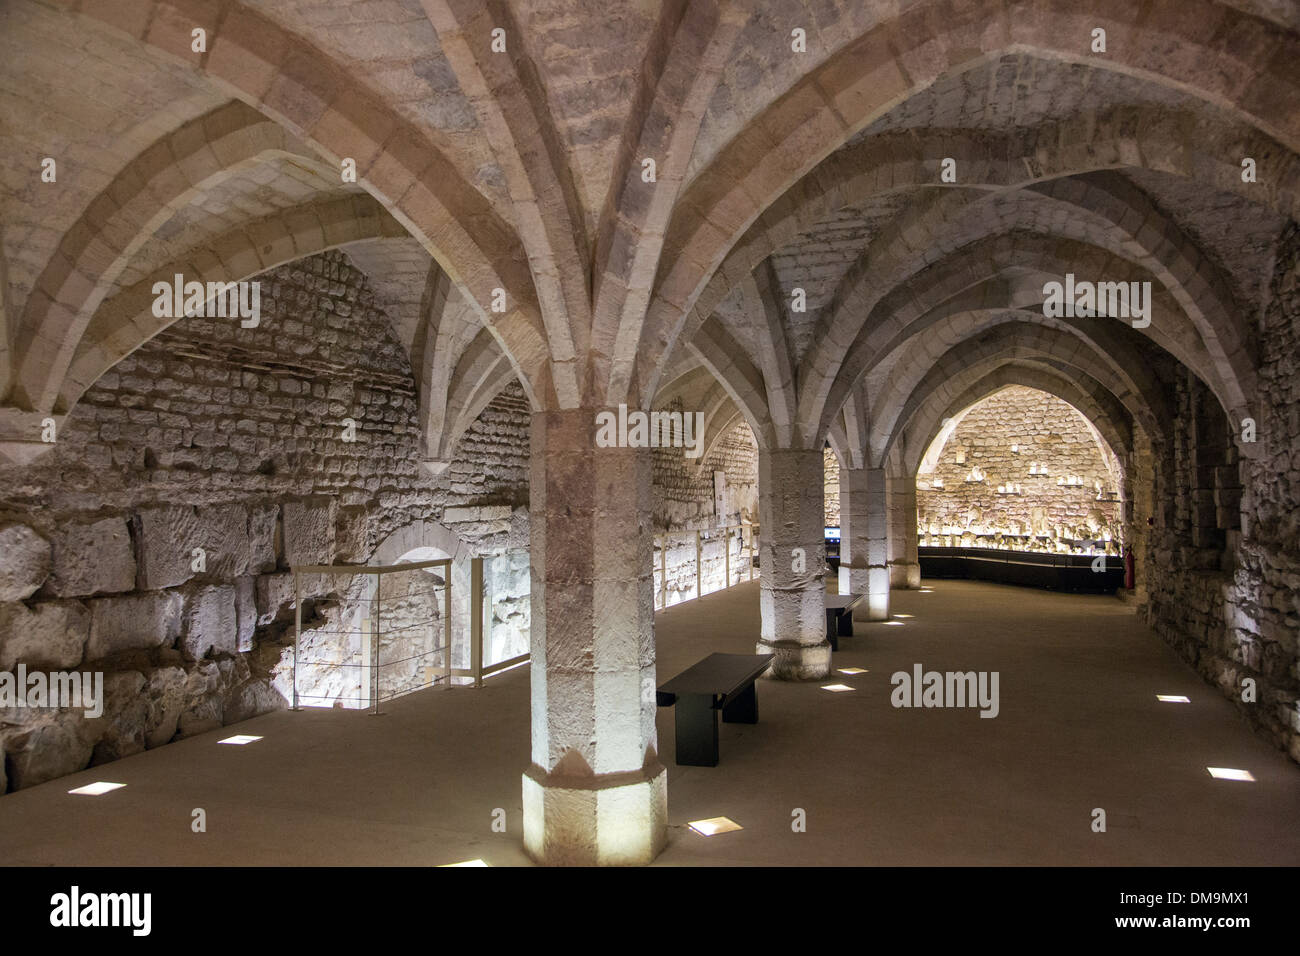 14TH CENTURY CELLAR WITH VAULTED CEILING IN THE CITY MUSEUM OF ART AND ARCHAEOLOGY IN THE FORMER BISHOP'S PALACE, SENLIS, OISE (60), FRANCE - Stock Image